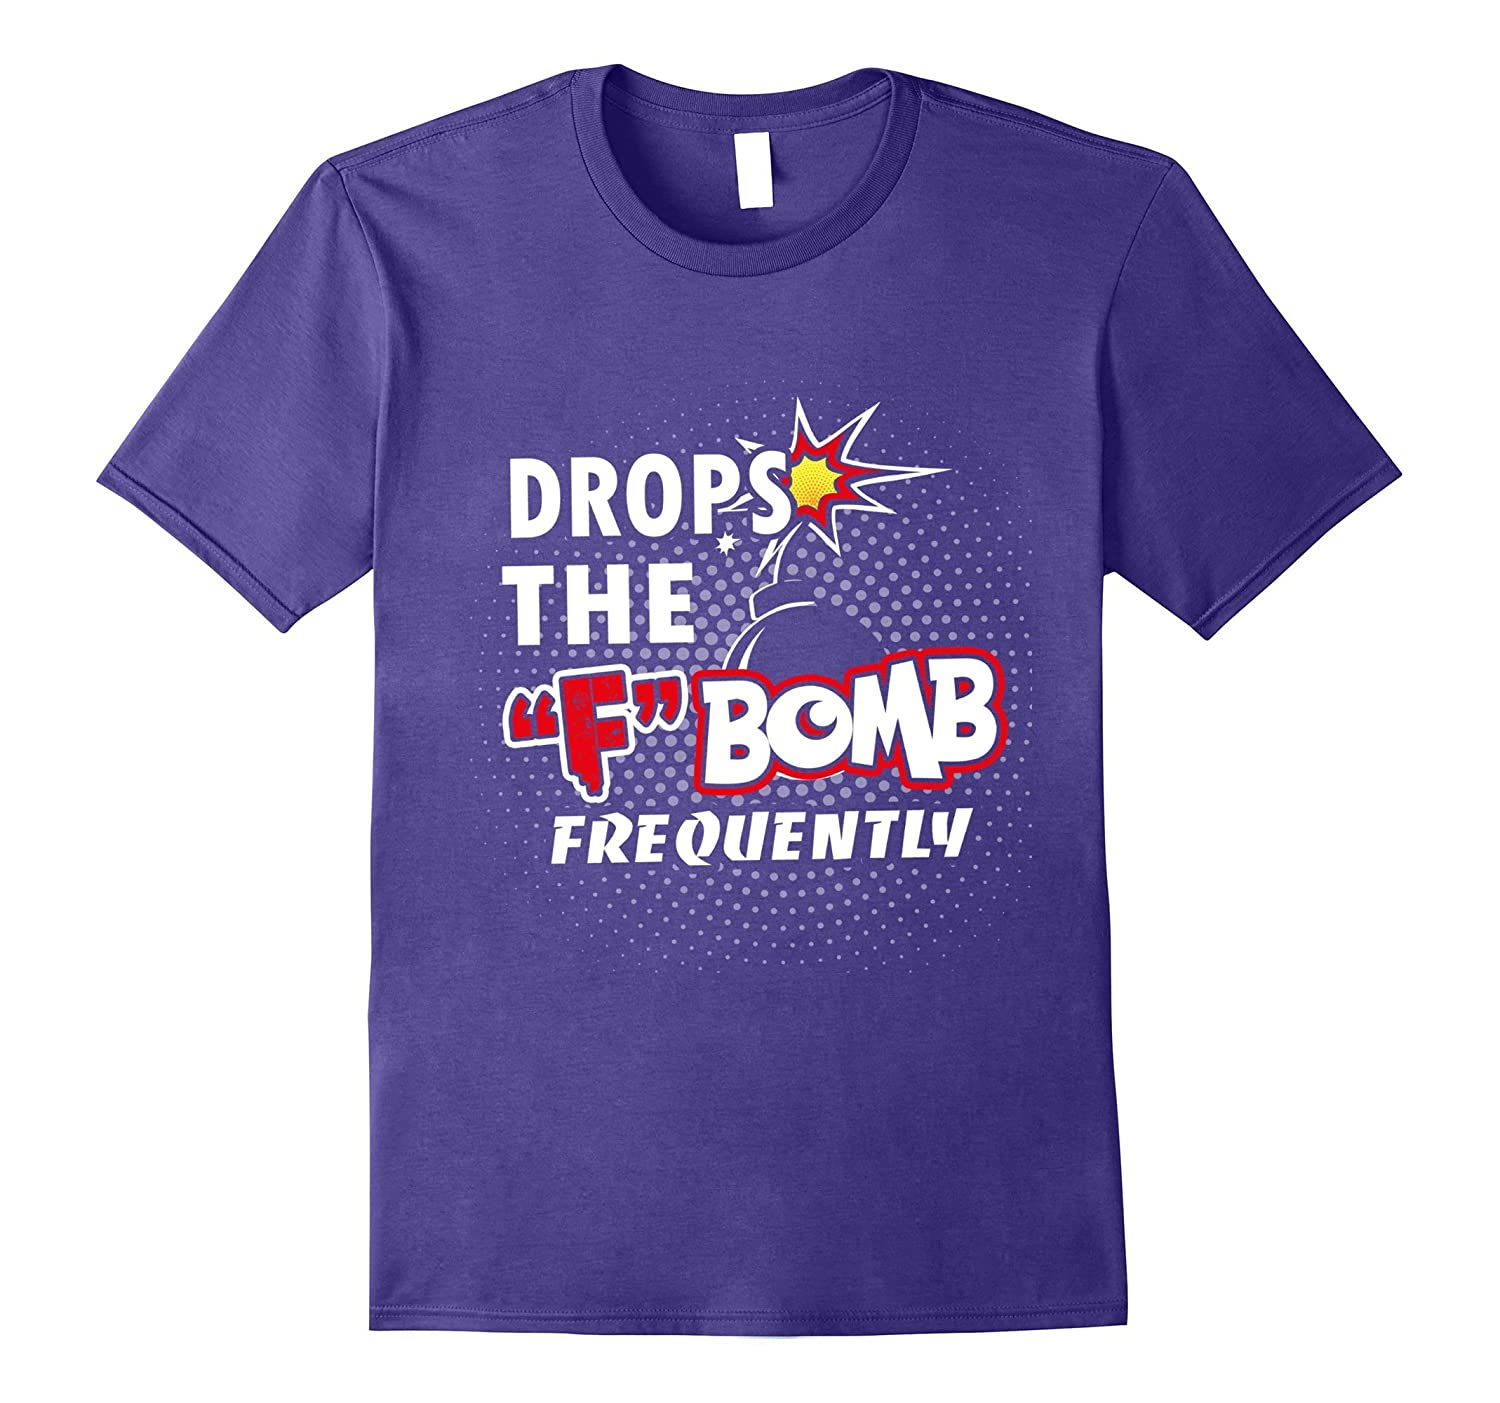 Drops The F Bomb Frequently Tee Shirt - Funny Gift-Art